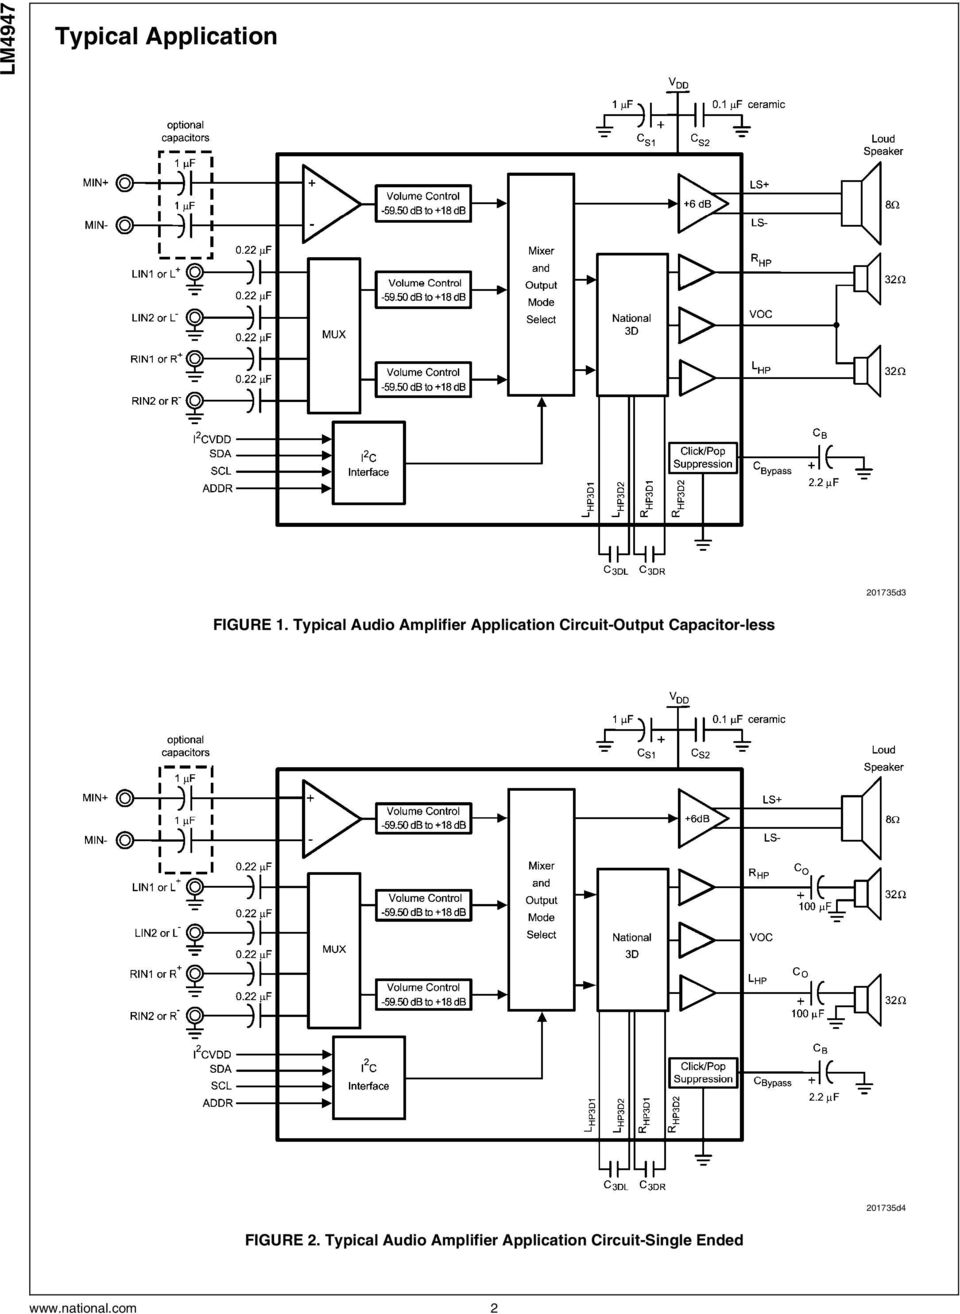 Lm4947 Mono Class D And Stereo Audio Sub System With Ocl National Lm386 Power Amplifier Datasheet For Battery Operation Typical Application Circuit Single Ended 2 Capacitor Less 201735d4 Figure